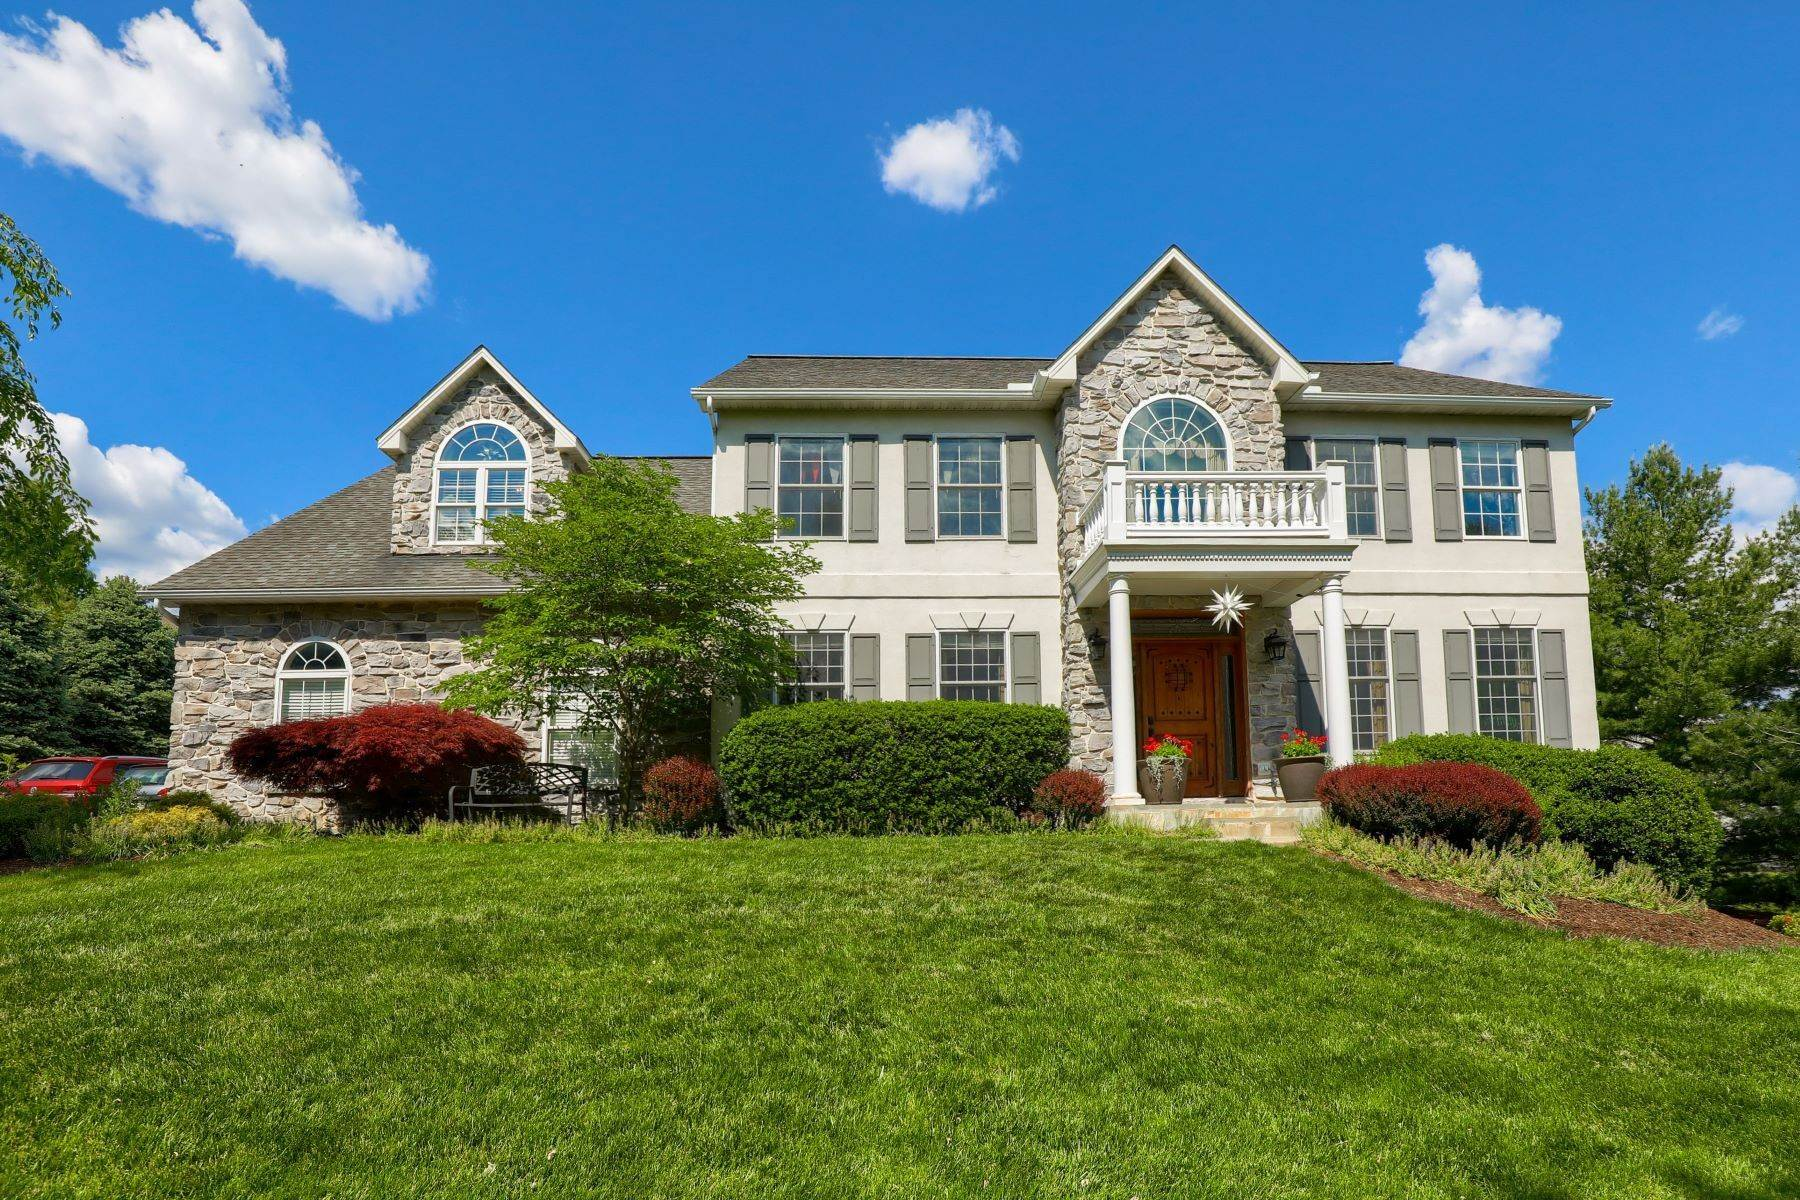 Single Family Homes for Sale at 195 W Millport Road Lititz, Pennsylvania 17543 United States